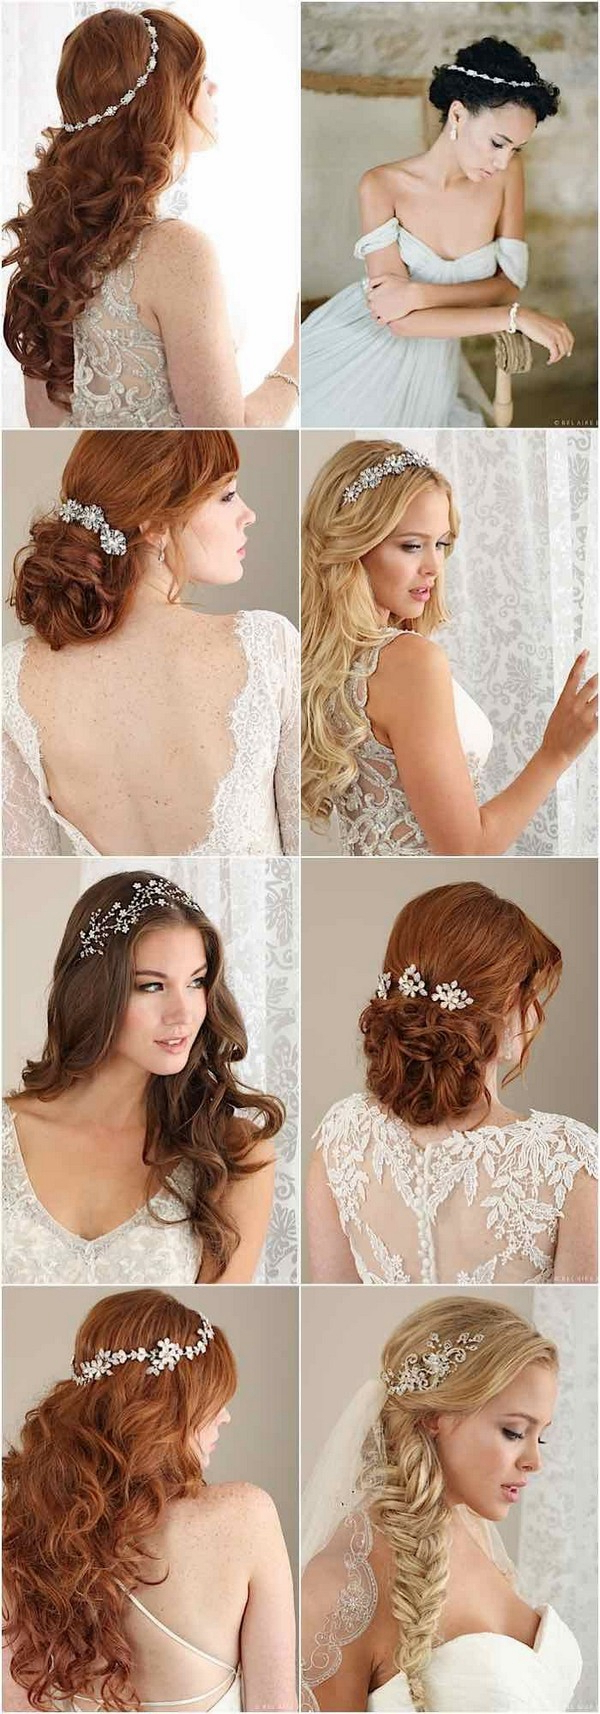 100+ Romantic Long Wedding Hairstyles 2019 – Curls, Half Up, Updos Intended For Current Elegant Bridal Hairdos For Ombre Hair (Gallery 4 of 20)